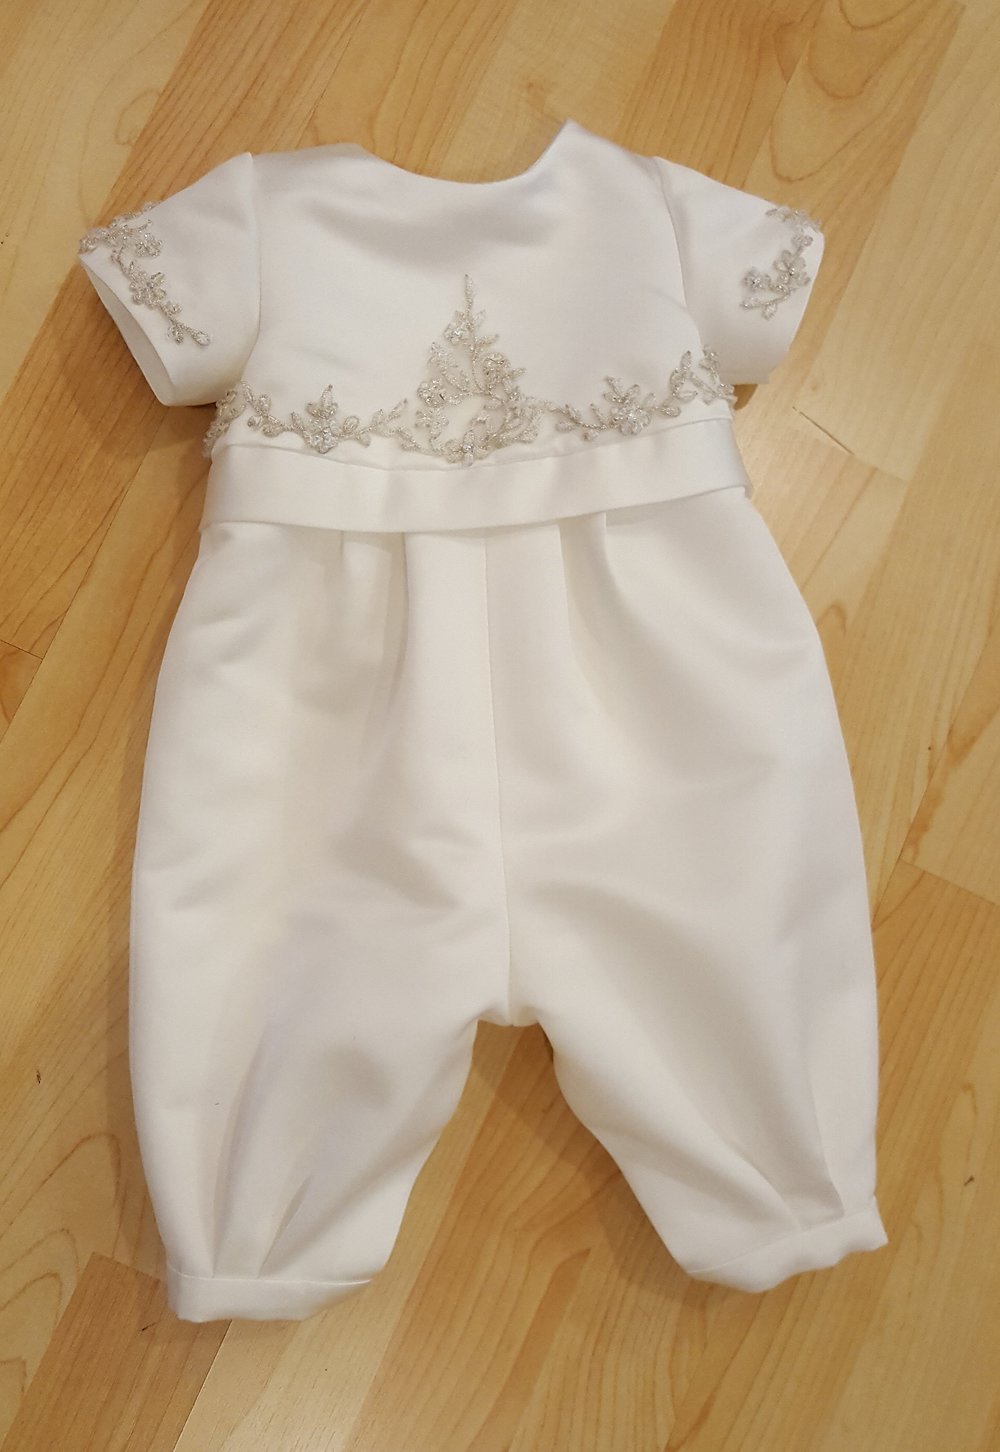 Under the Christening Gown is a Christening Romper